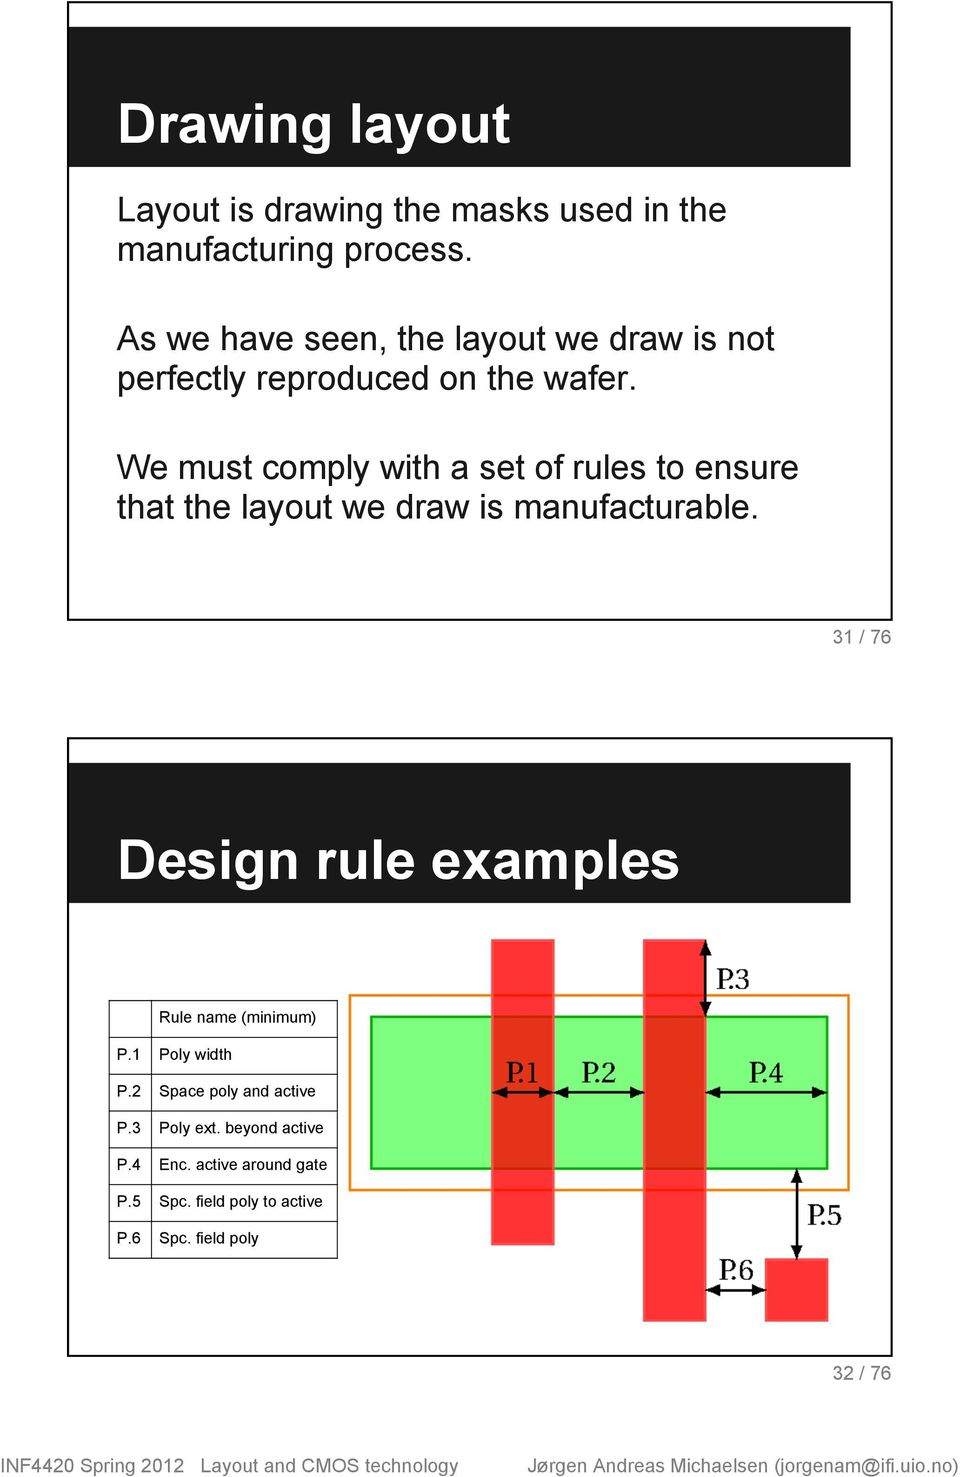 We must comply with a set of rules to ensure that the layout we draw is manufacturable.